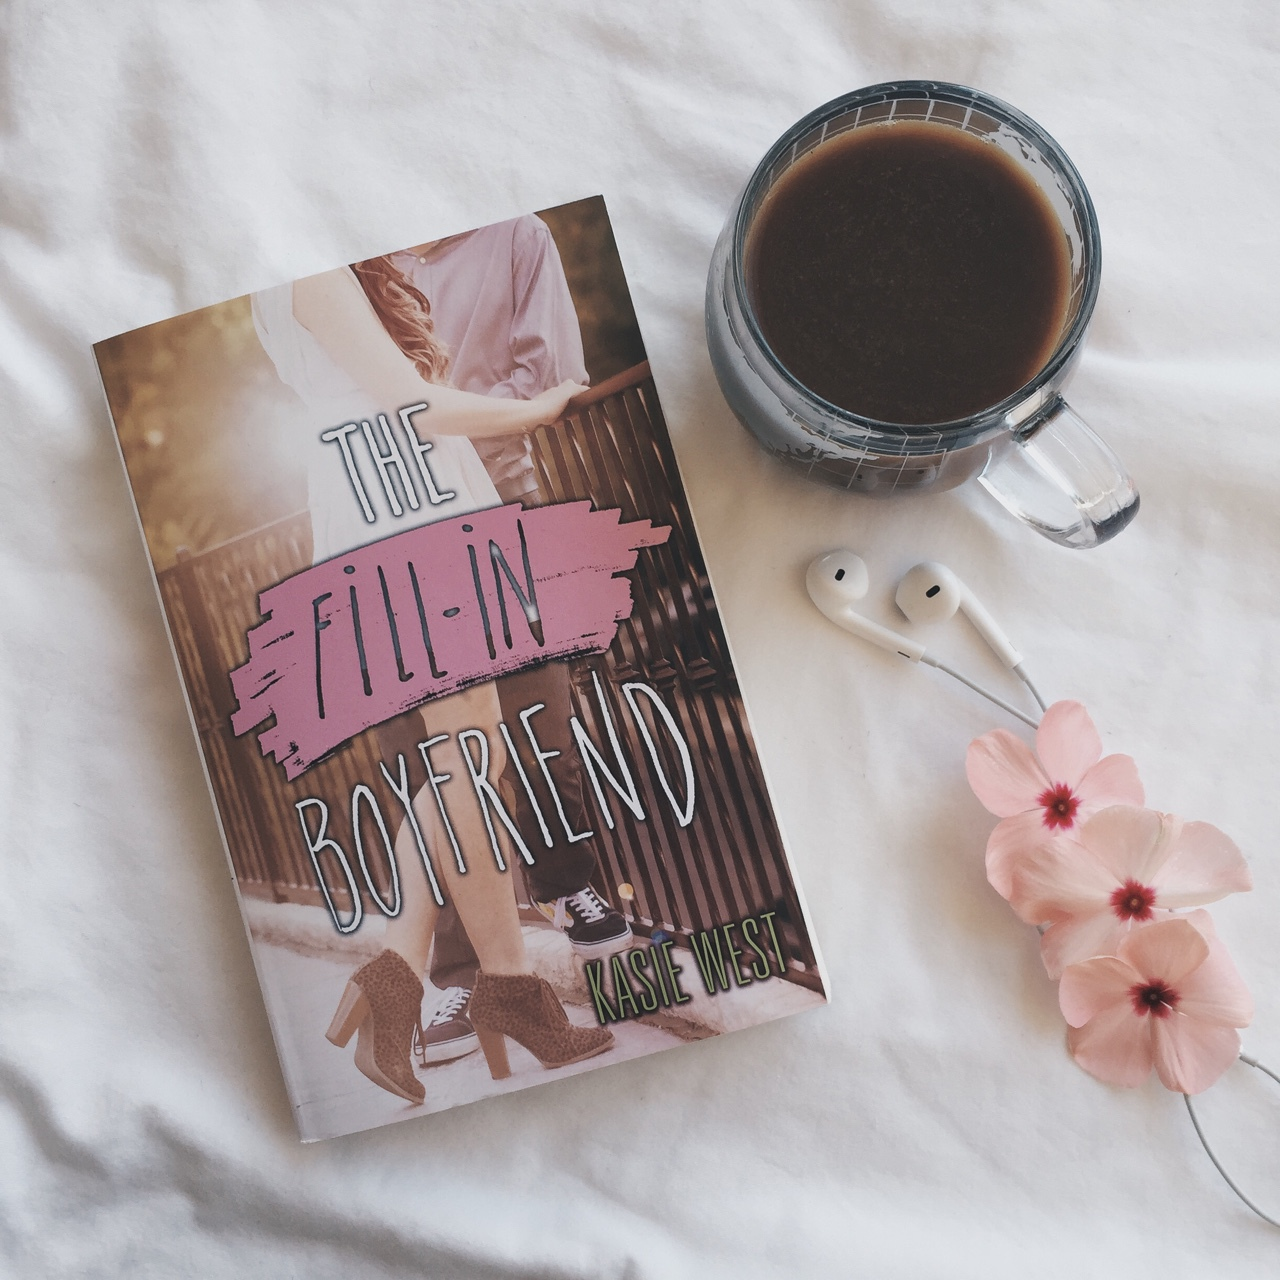 book, inspiration, and cafe image